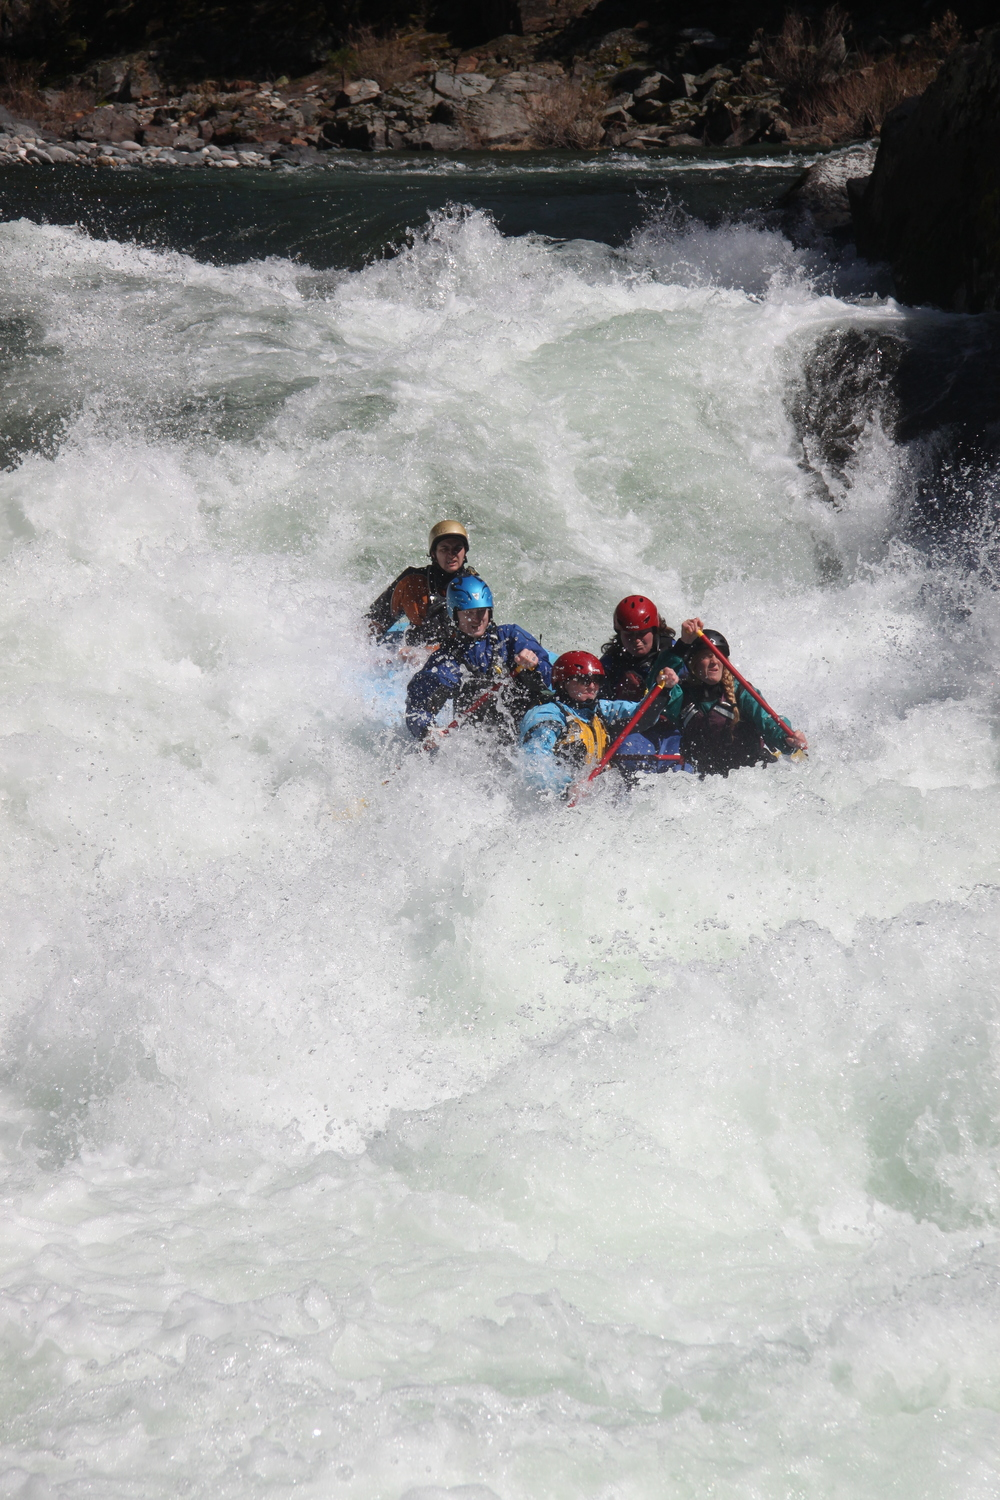 Maytag Rapid - North Fork Yuba